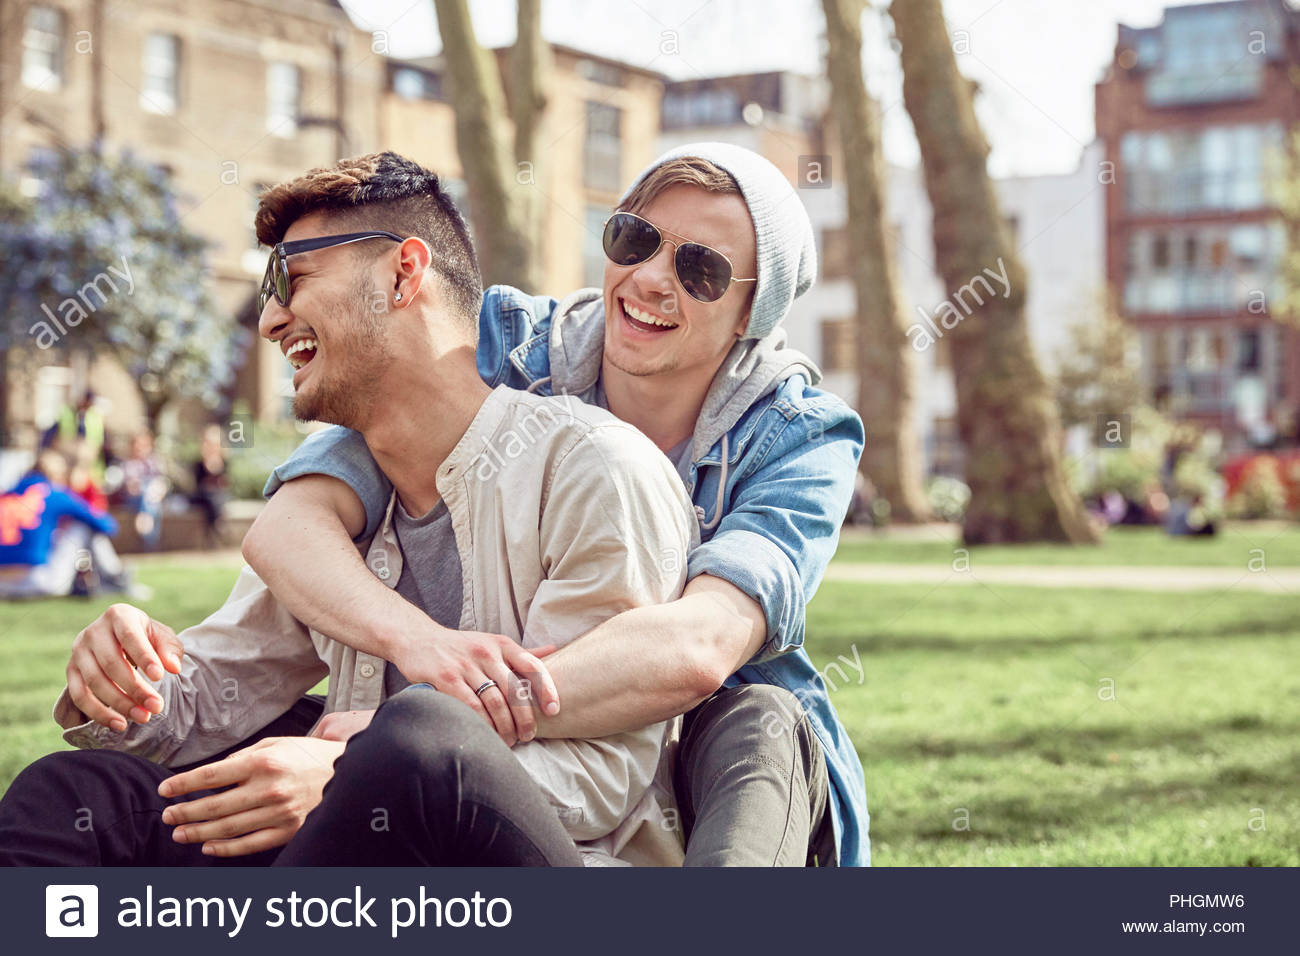 Gay teen dating in mn